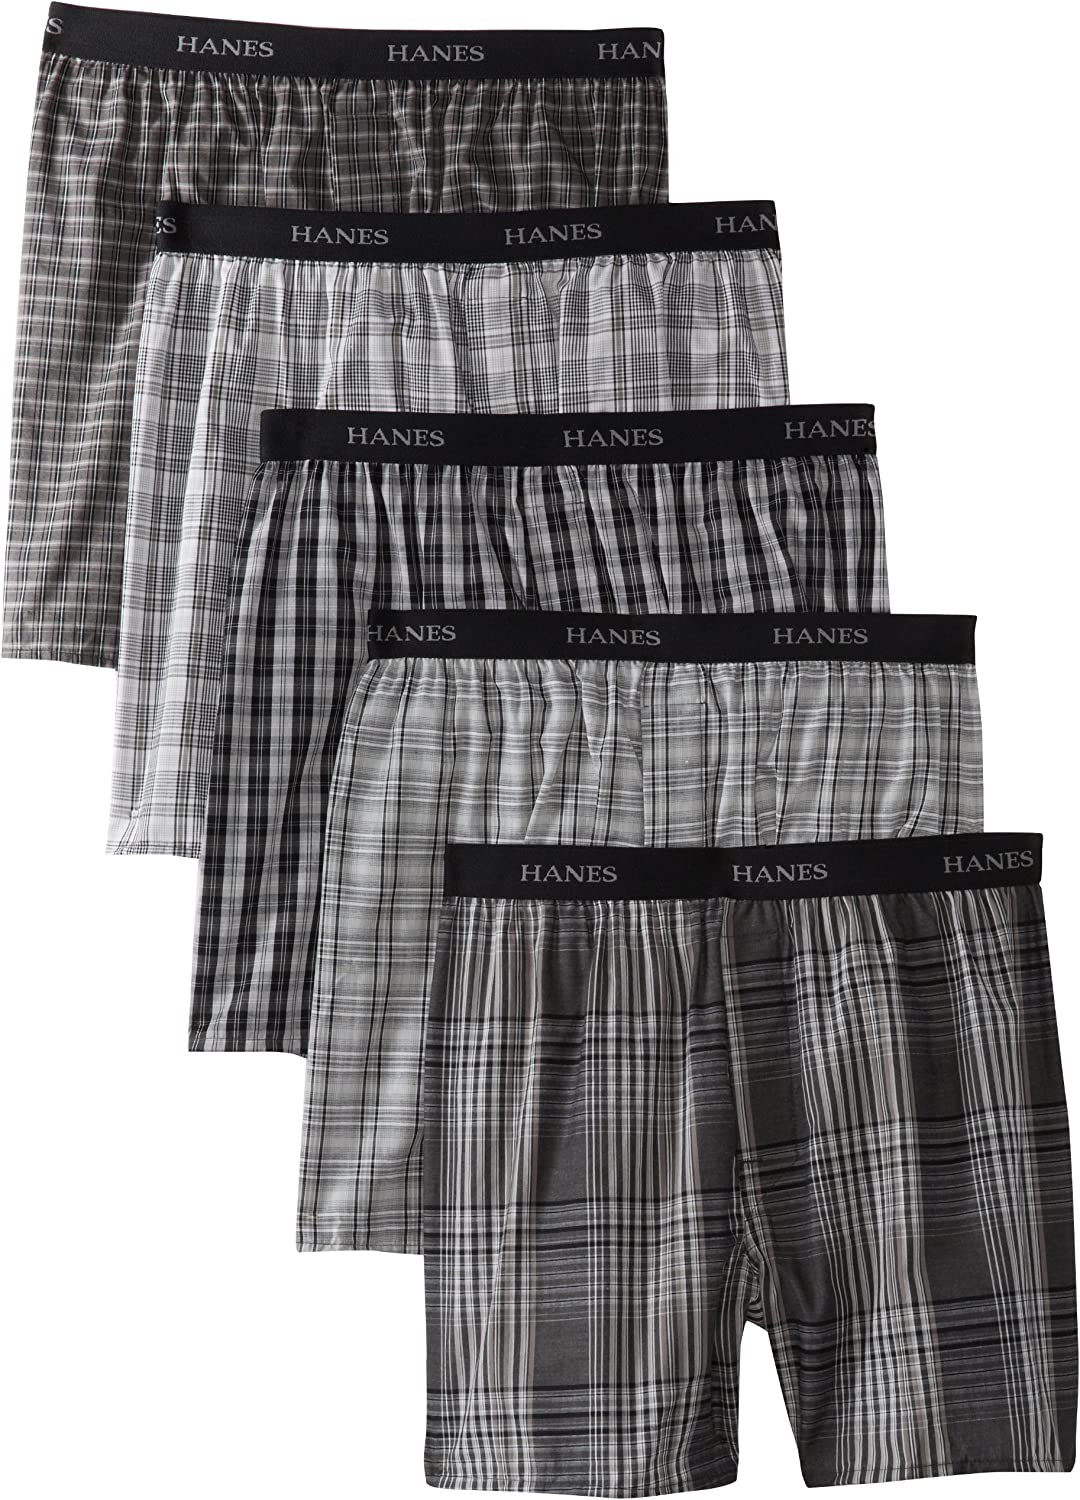 Hanes Ultimate Men's 5-Pack Yarn Dye Exposed Waistband Boxer-(Colors May Vary)